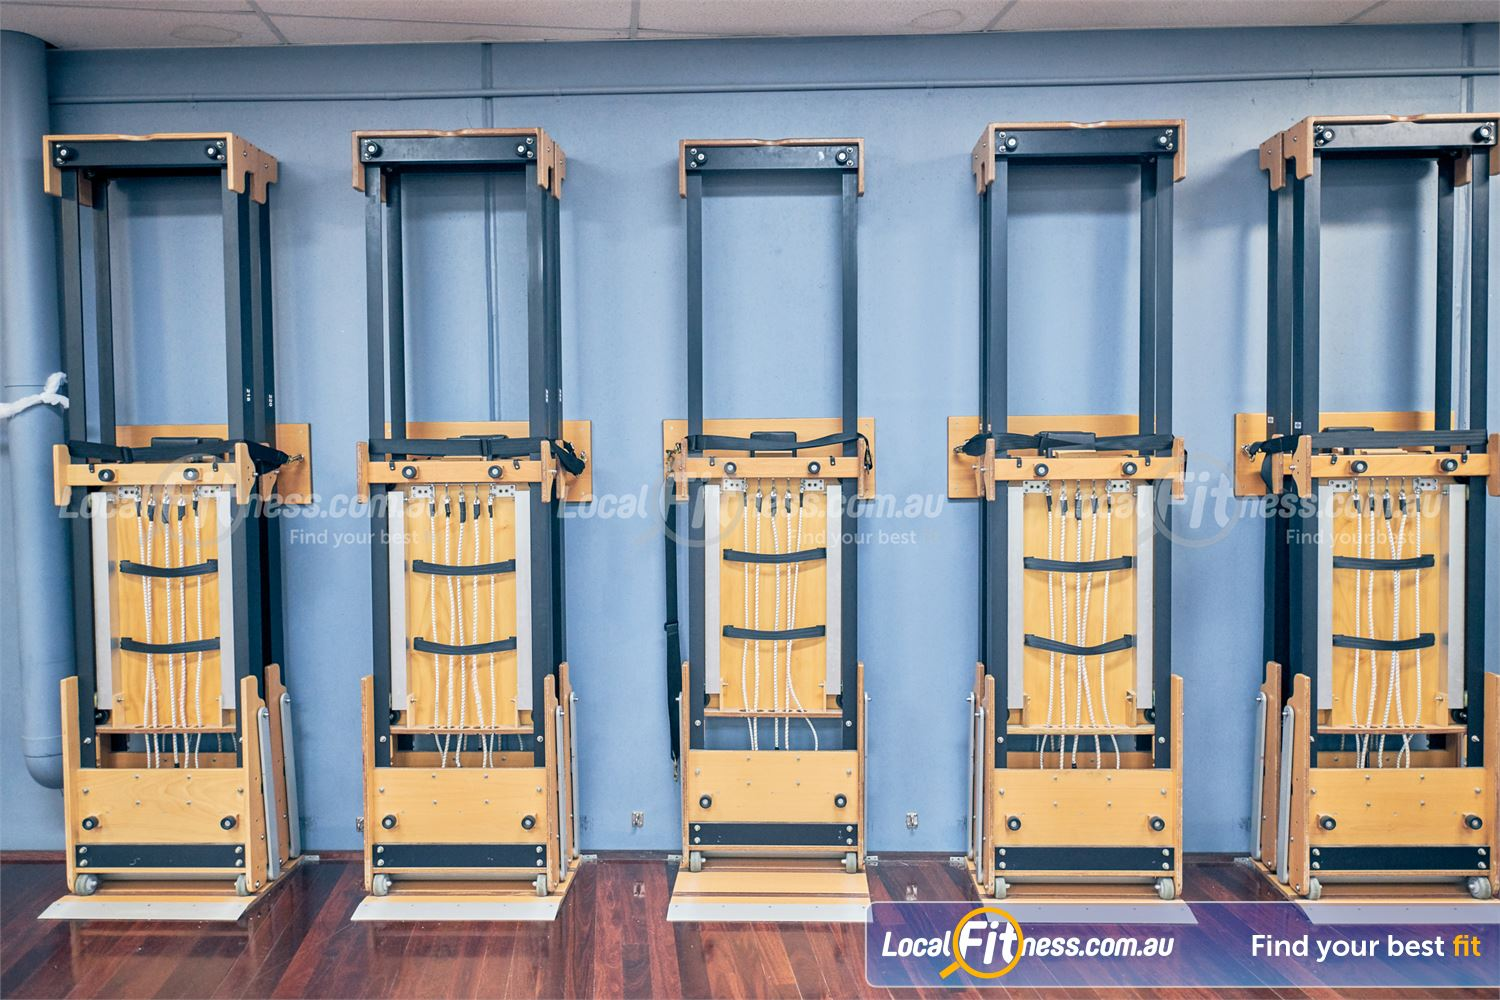 Goodlife Health Clubs Karingal Our Goodlife gym features Karingal Reformer Pilates classes.